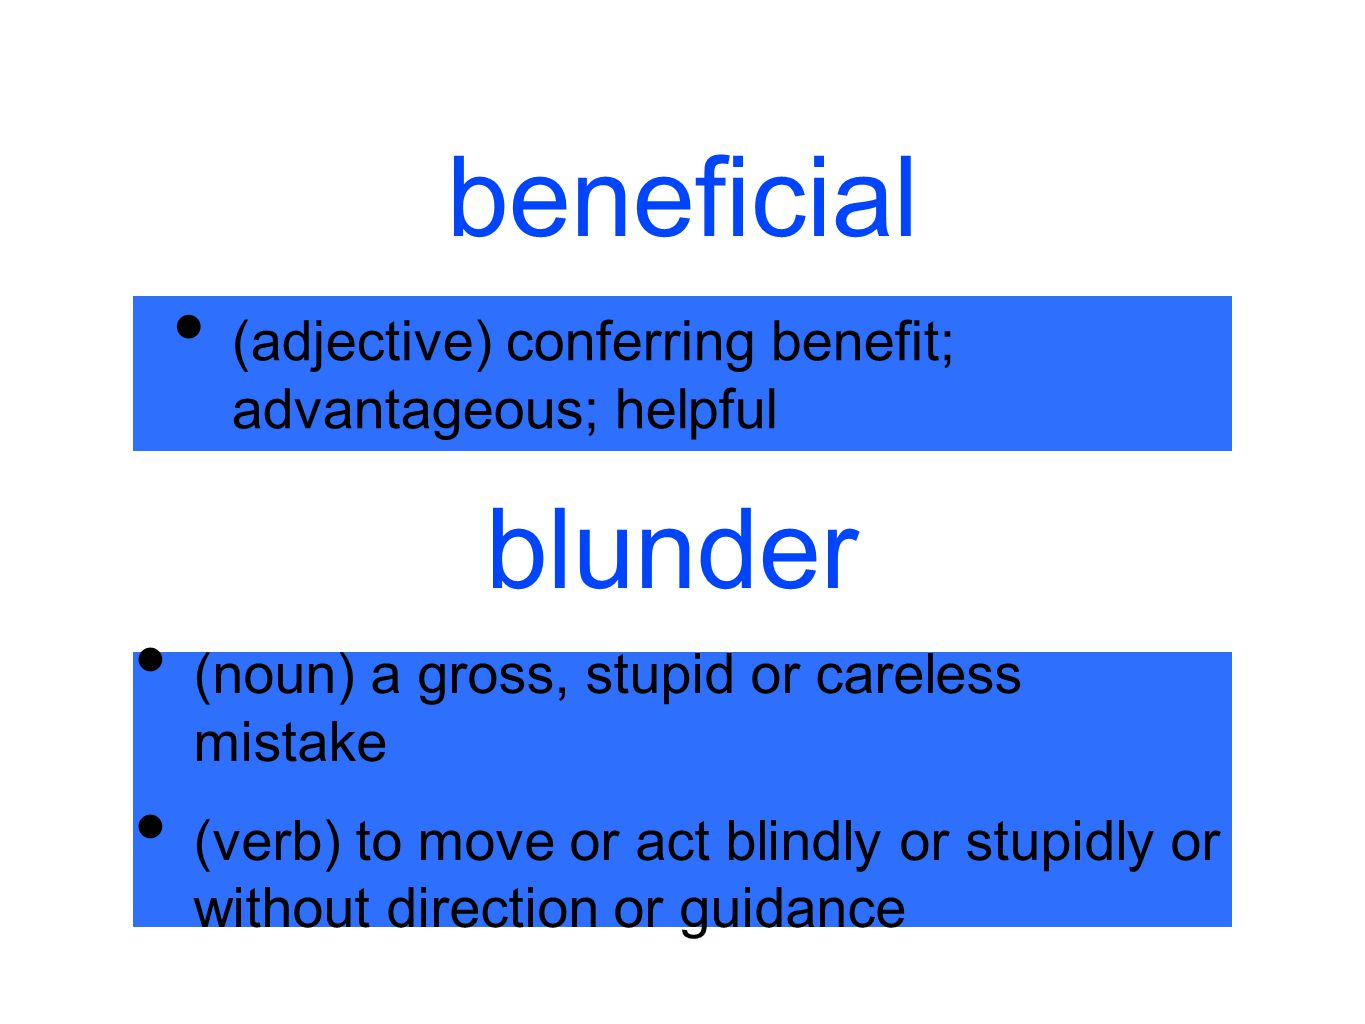 beneficial (adjective) conferring benefit; advantageous; helpful blunder (noun) a gross, stupid or careless mistake (verb) to move or act blindly or s